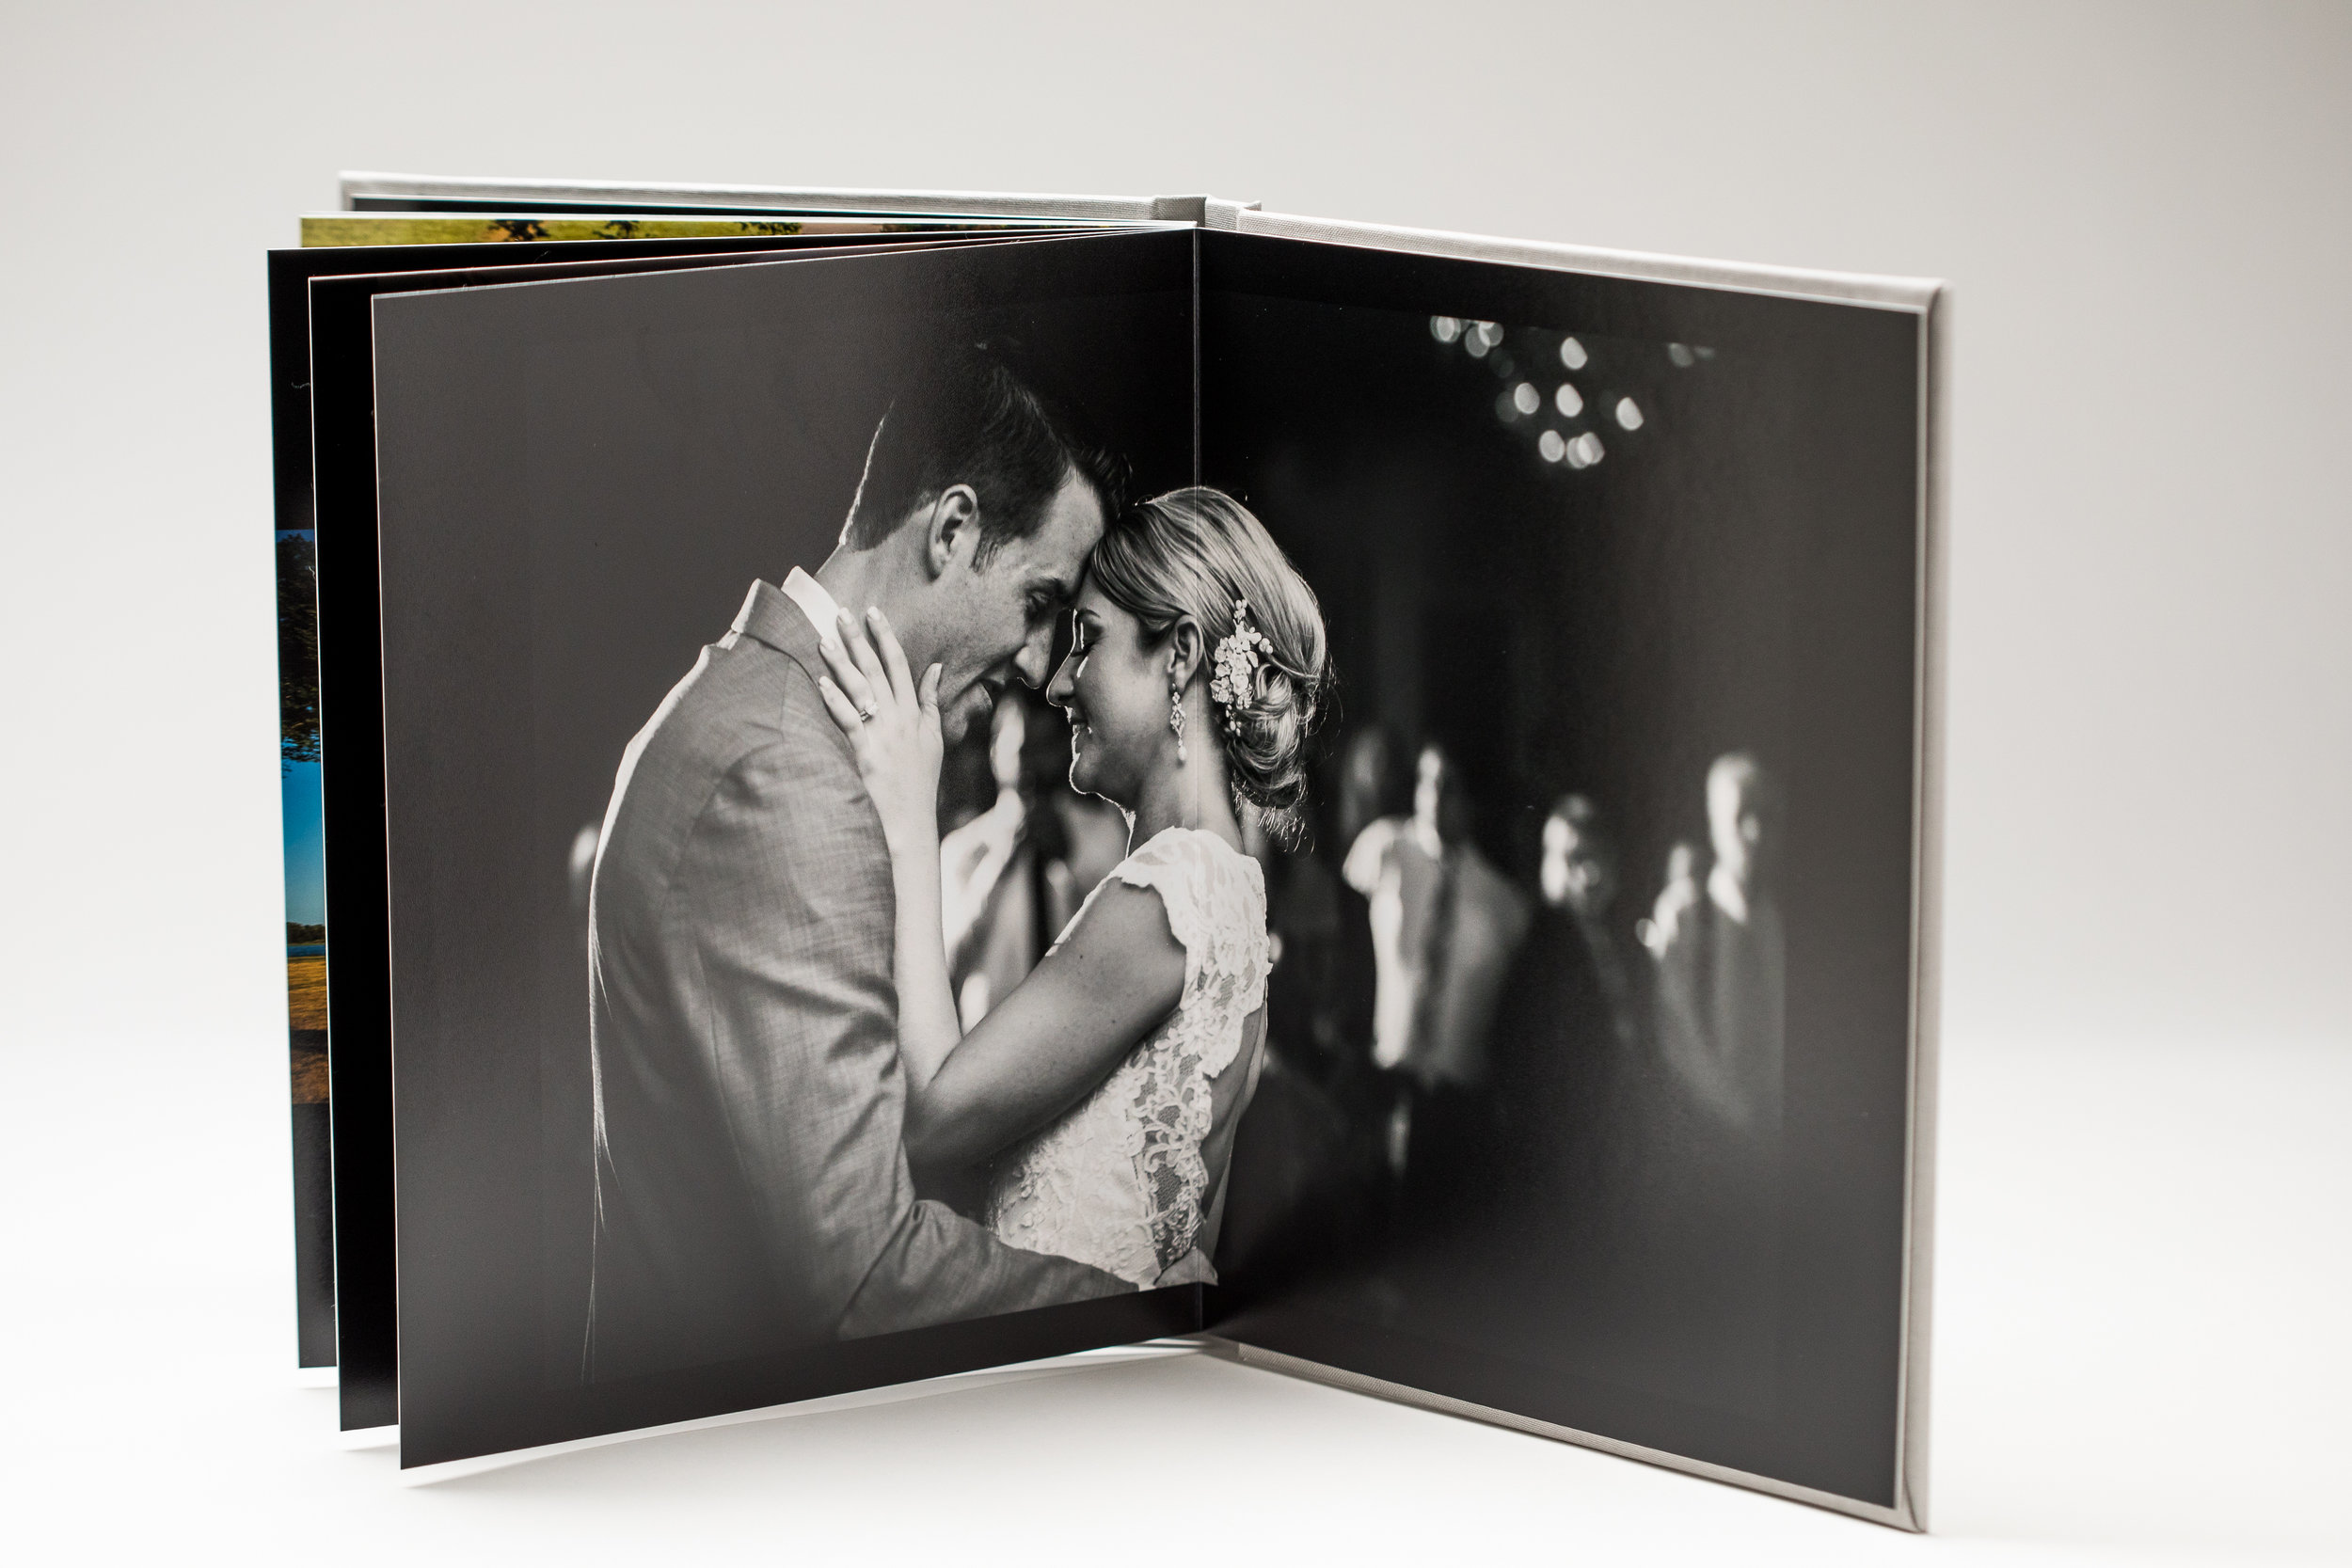 custom heirloom album - We want you to walk away with more than a digital gallery, because LOVE MATTERS! So we help design the perfect album for you to share with family, friends and your loved ones.